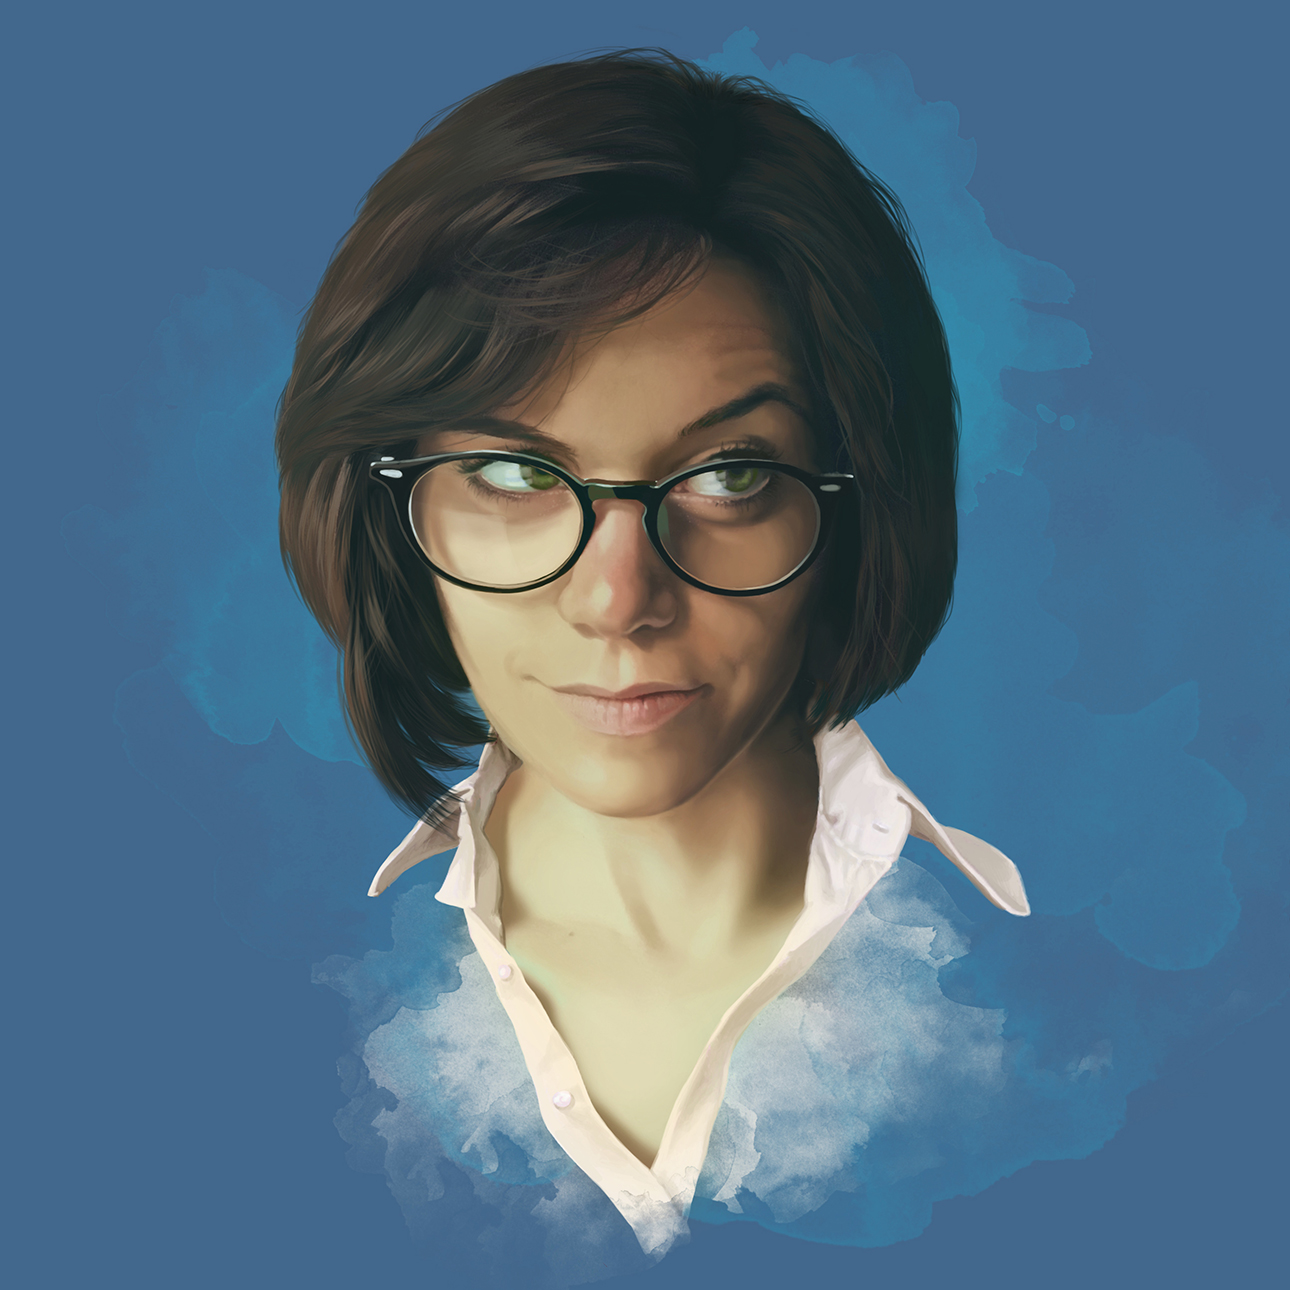 Digital art Self-portrait | Autoritratto